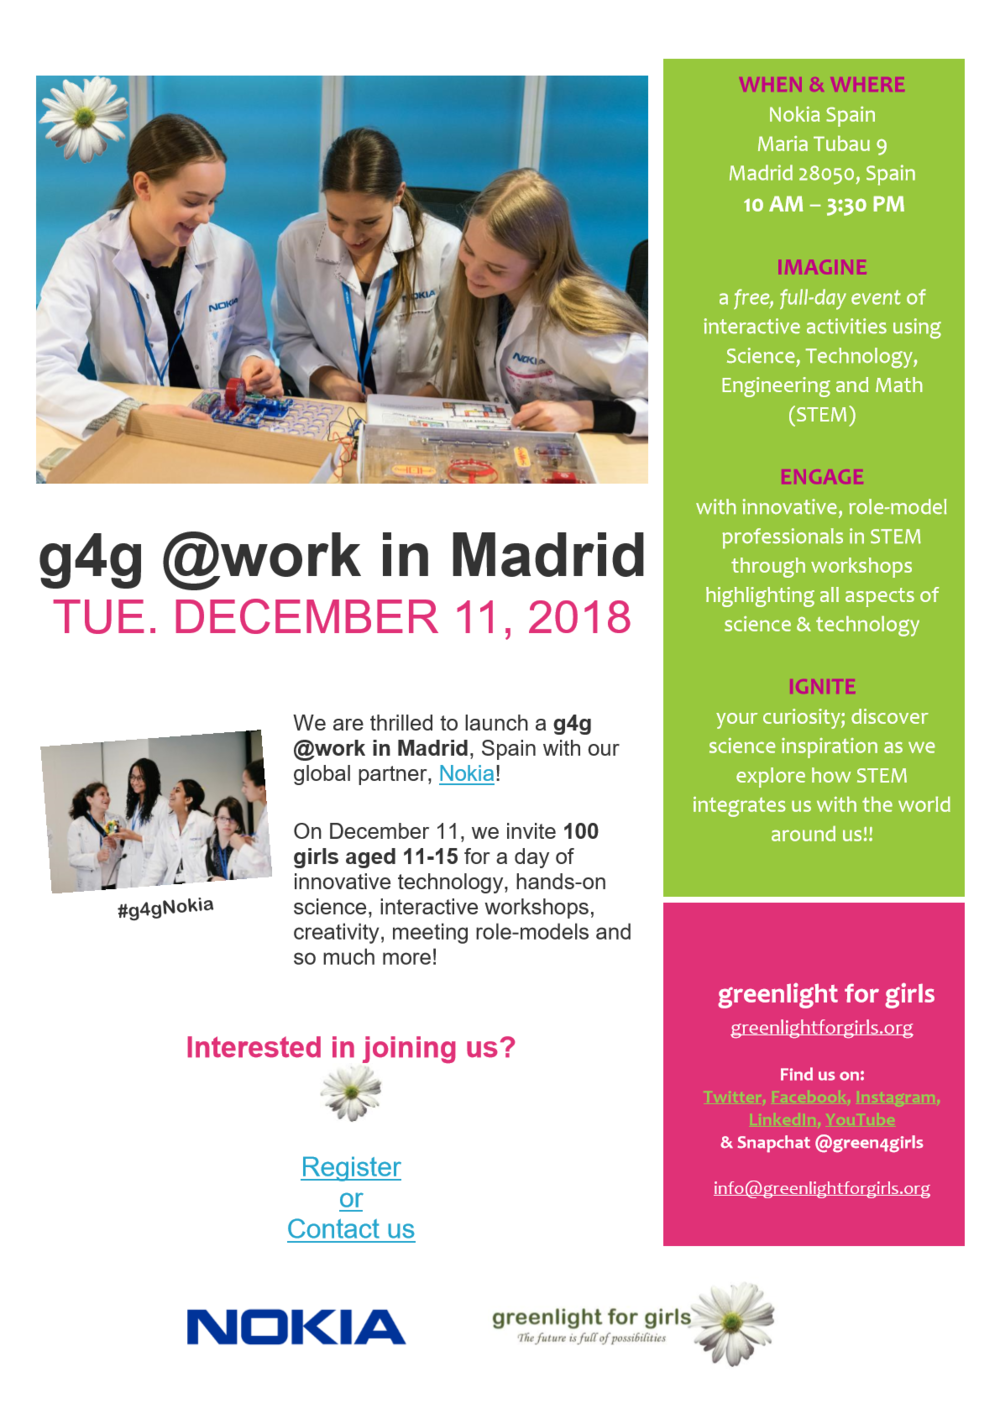 g4gatwork_nokia_madrid_2018.jpg